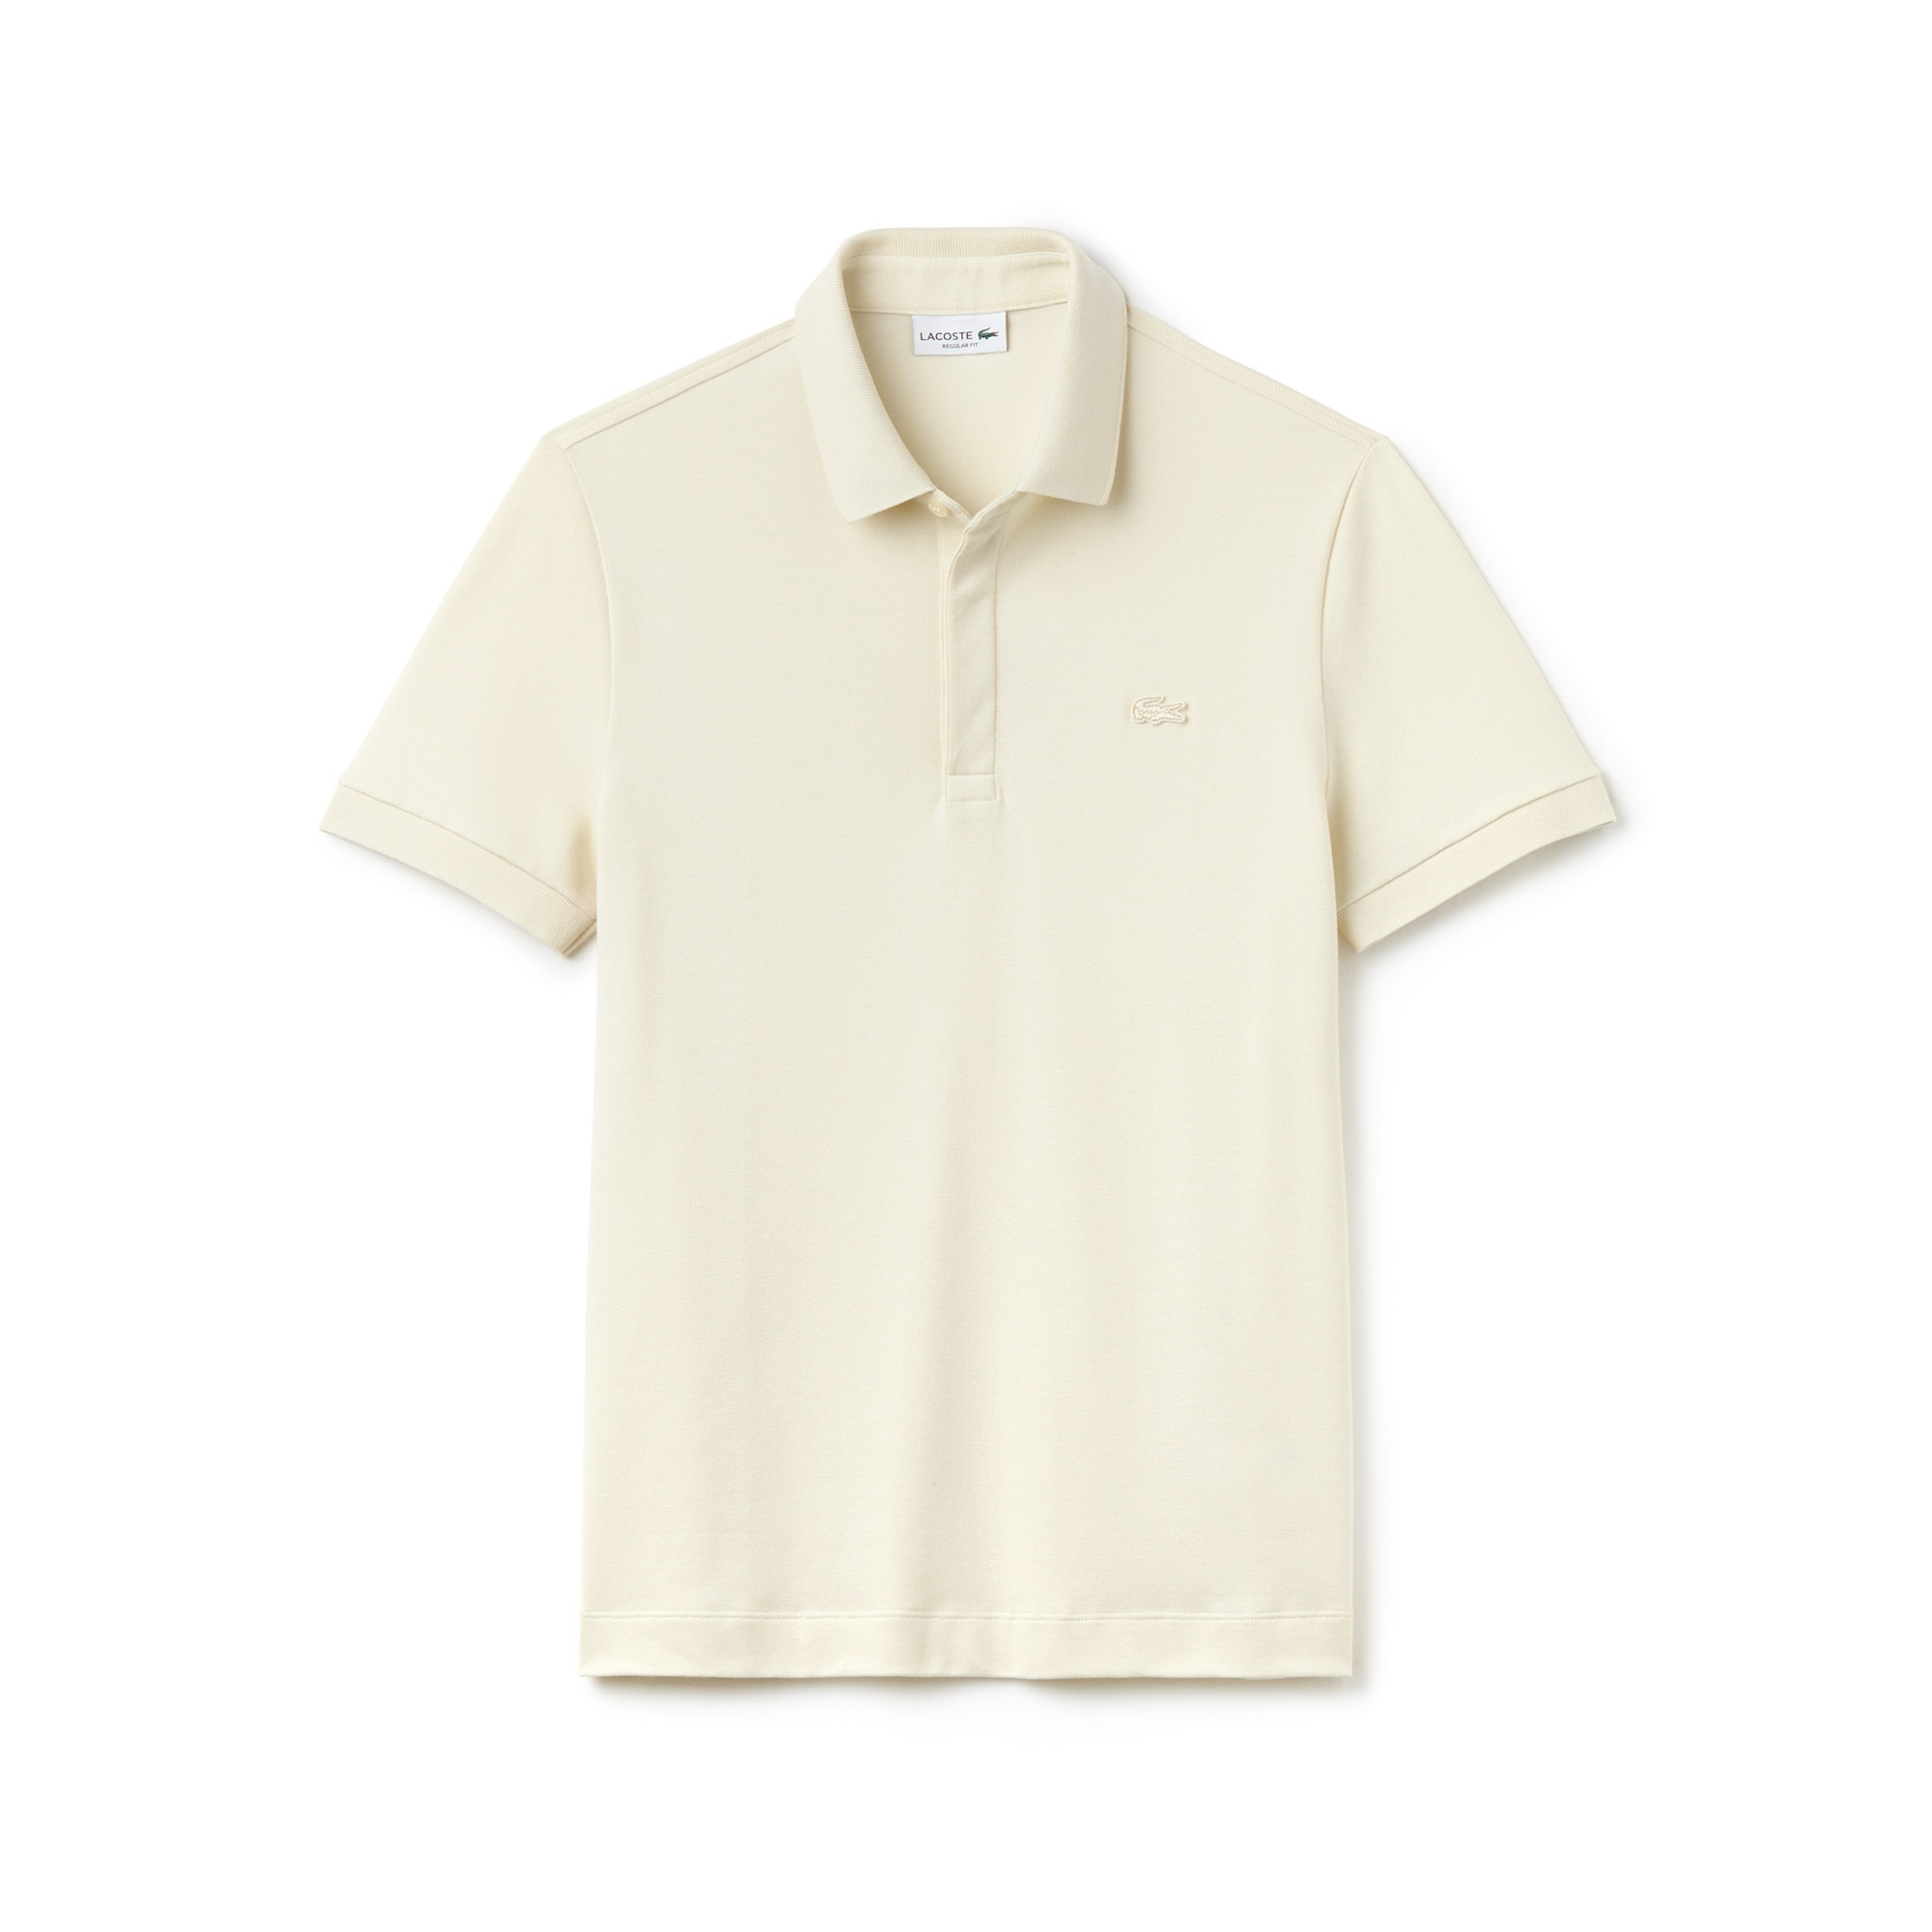 Men's Lacoste Paris Polo Regular Fit Stretch Cotton Piqué